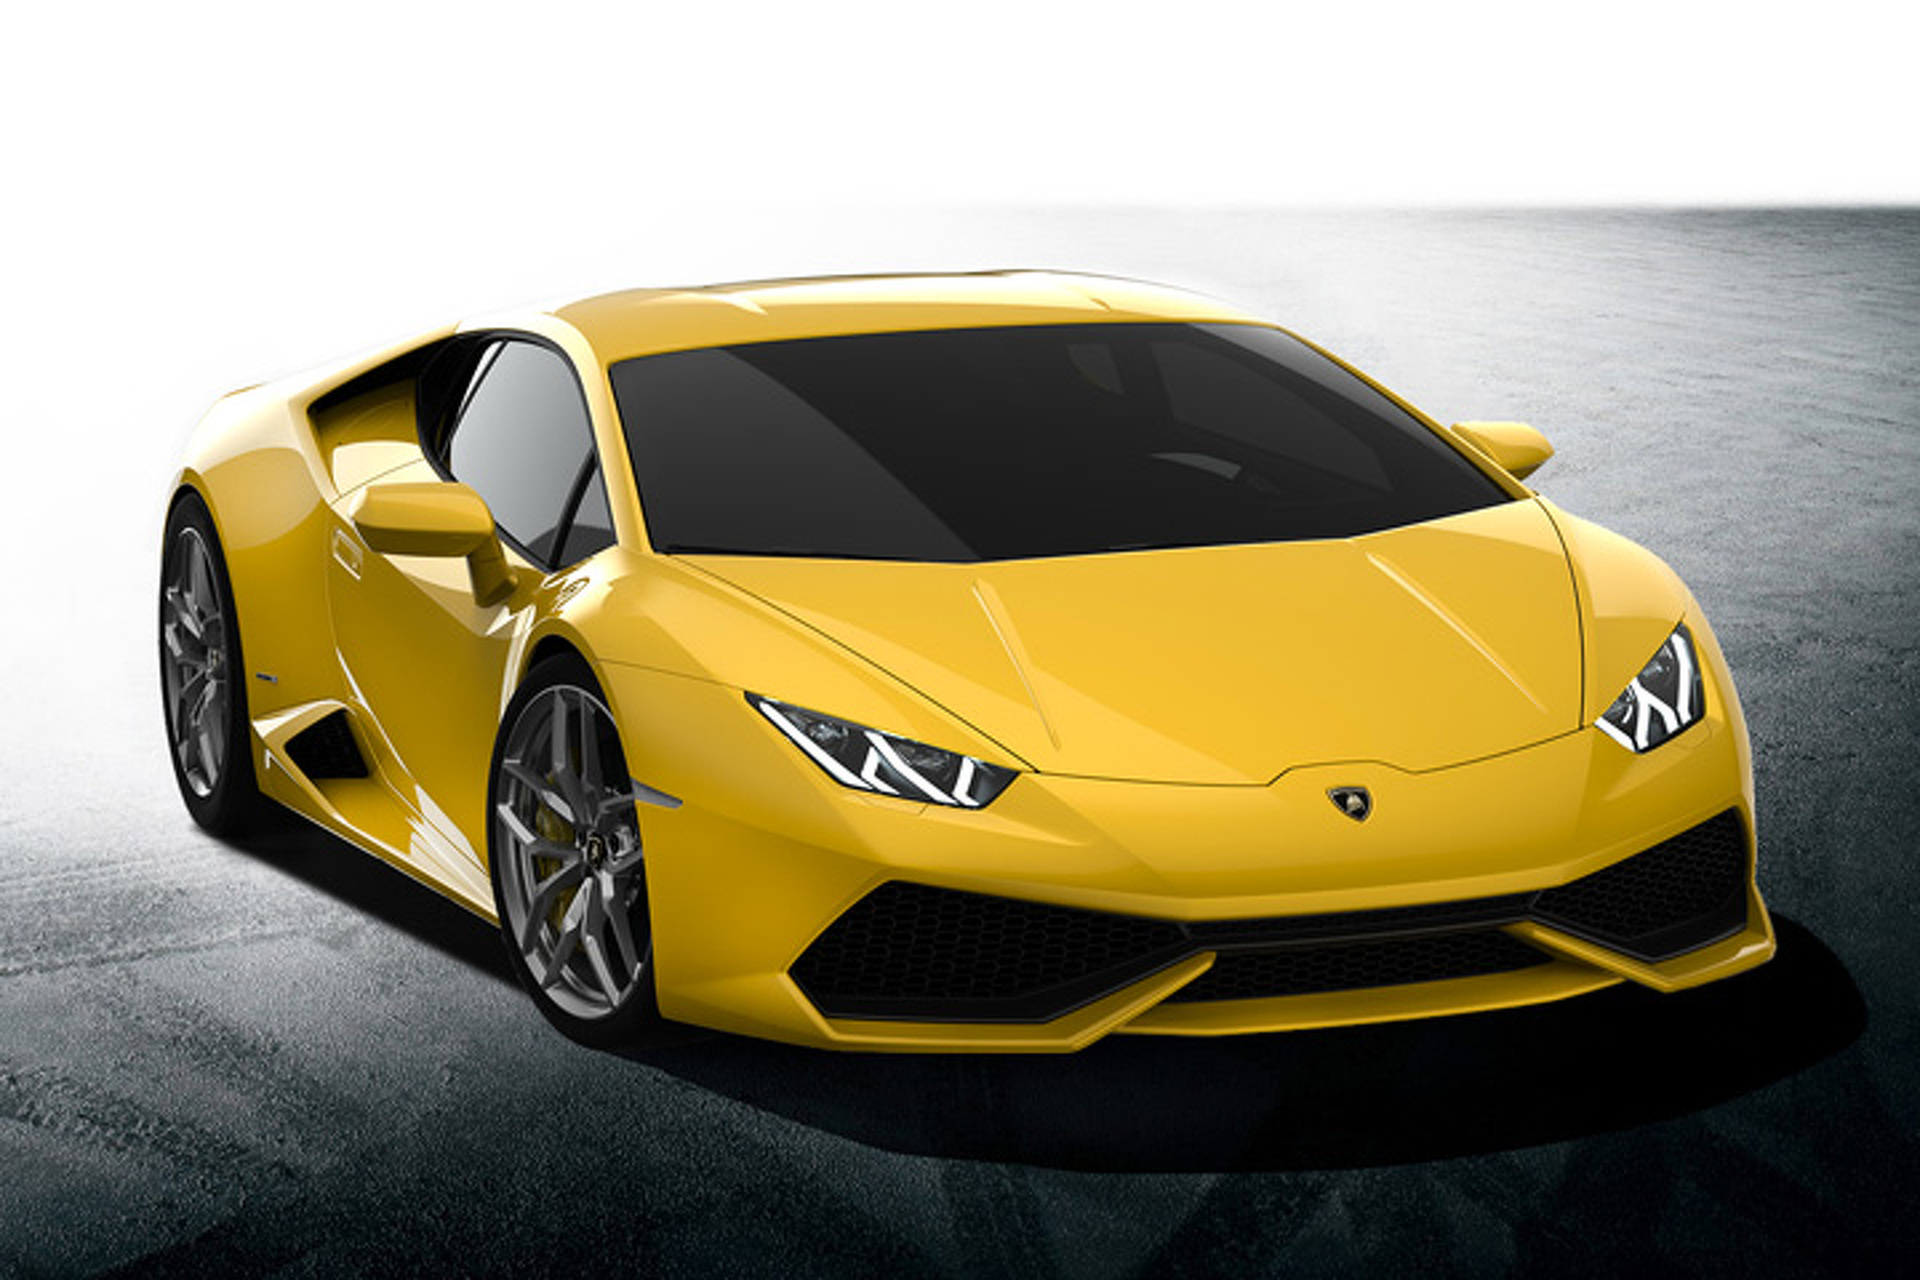 Sneak a Technical Peek at the Lamborghini Huracan [w/Video]